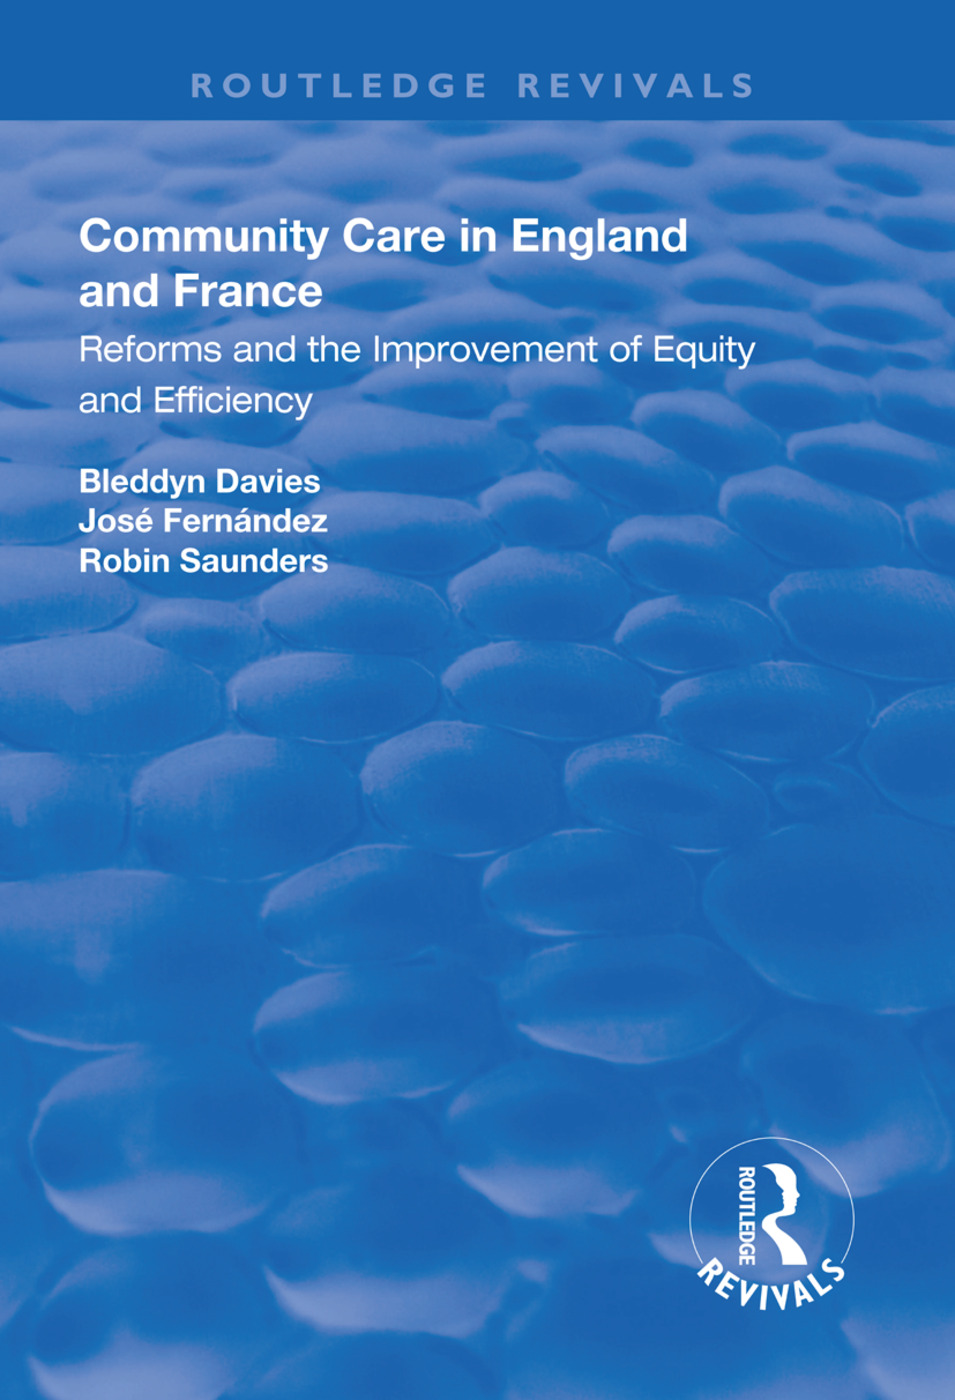 Community Care in England and France: Reforms and the Improvement of Equity and Efficiency book cover